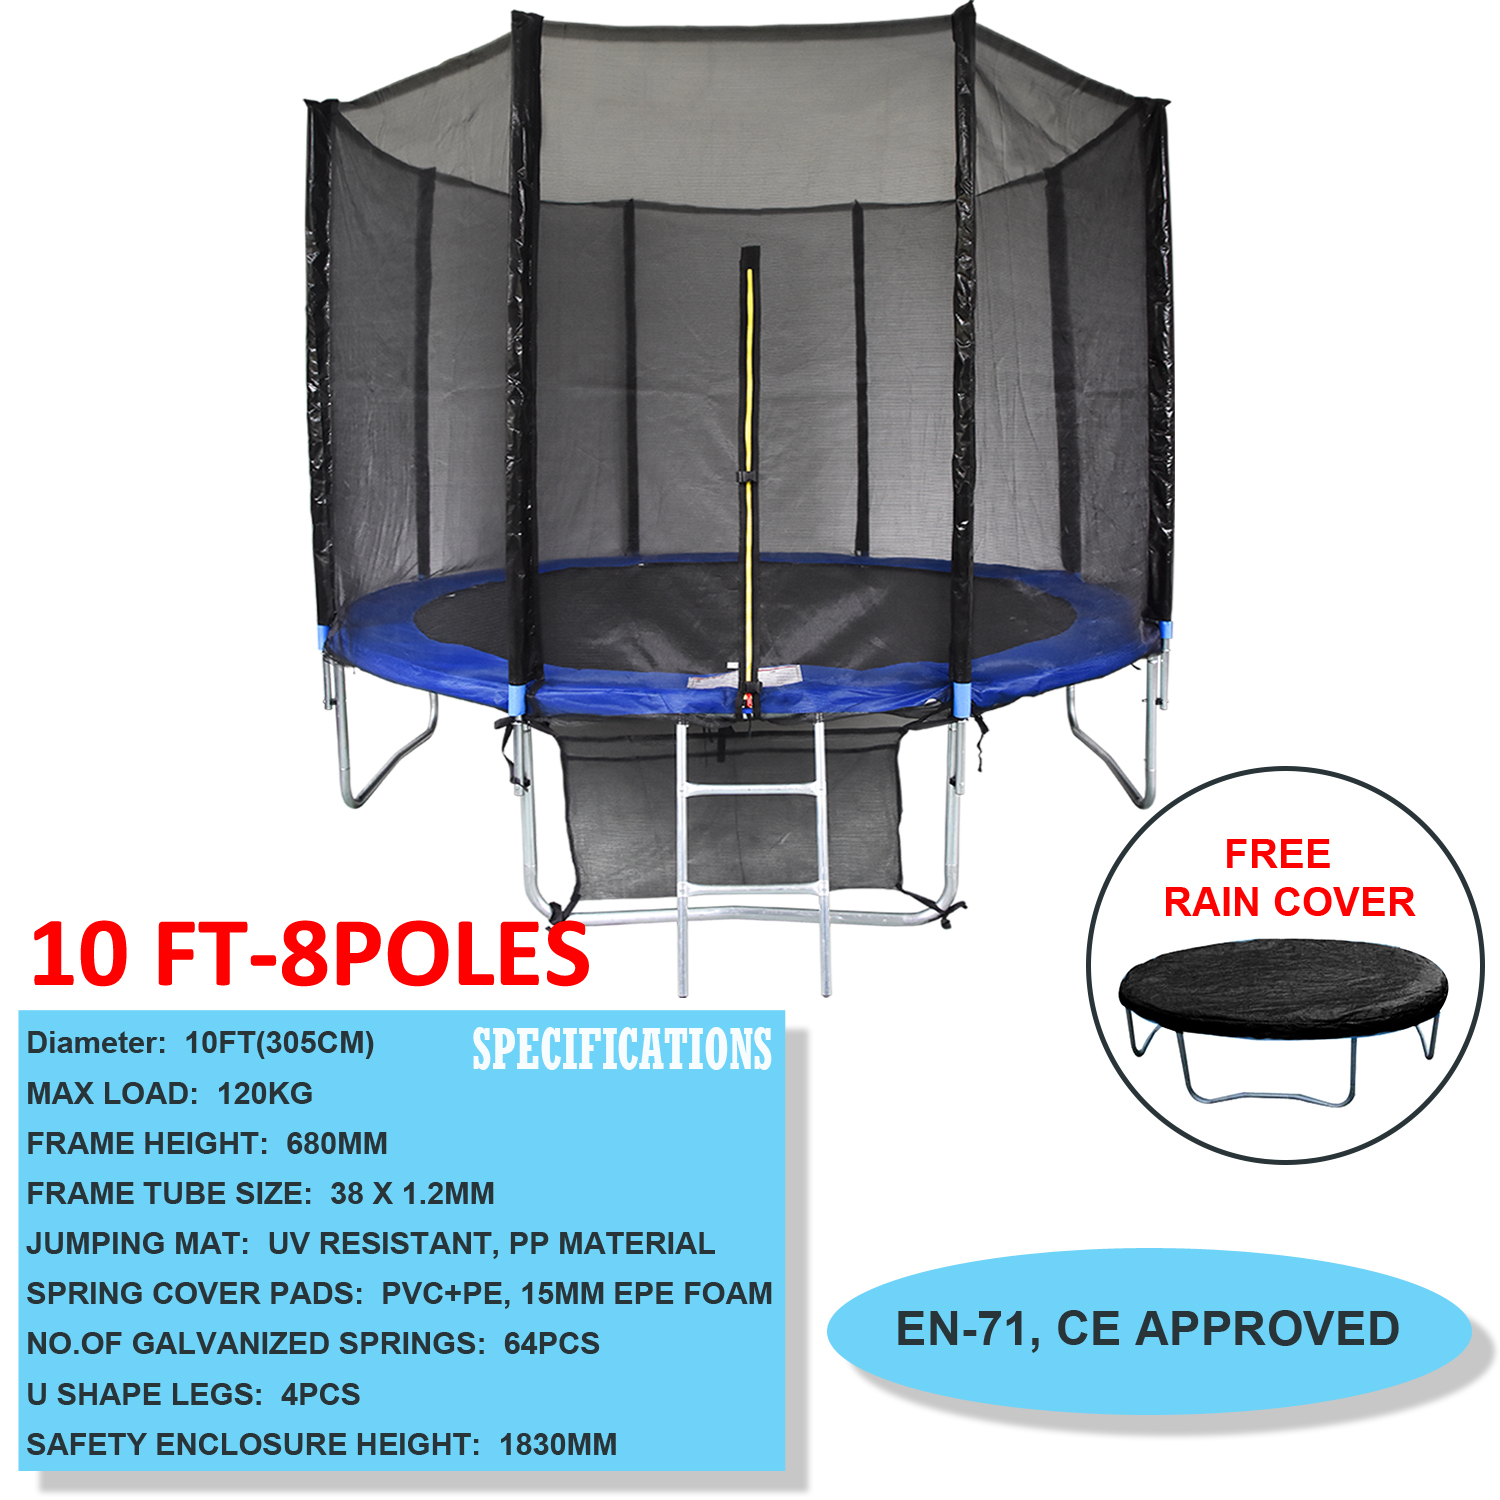 New Heavy Duty Trampoline 14 Ft With Ladder Safety Net: 6FT 8FT 10FT 12FT 14FT Trampoline With Safety Net